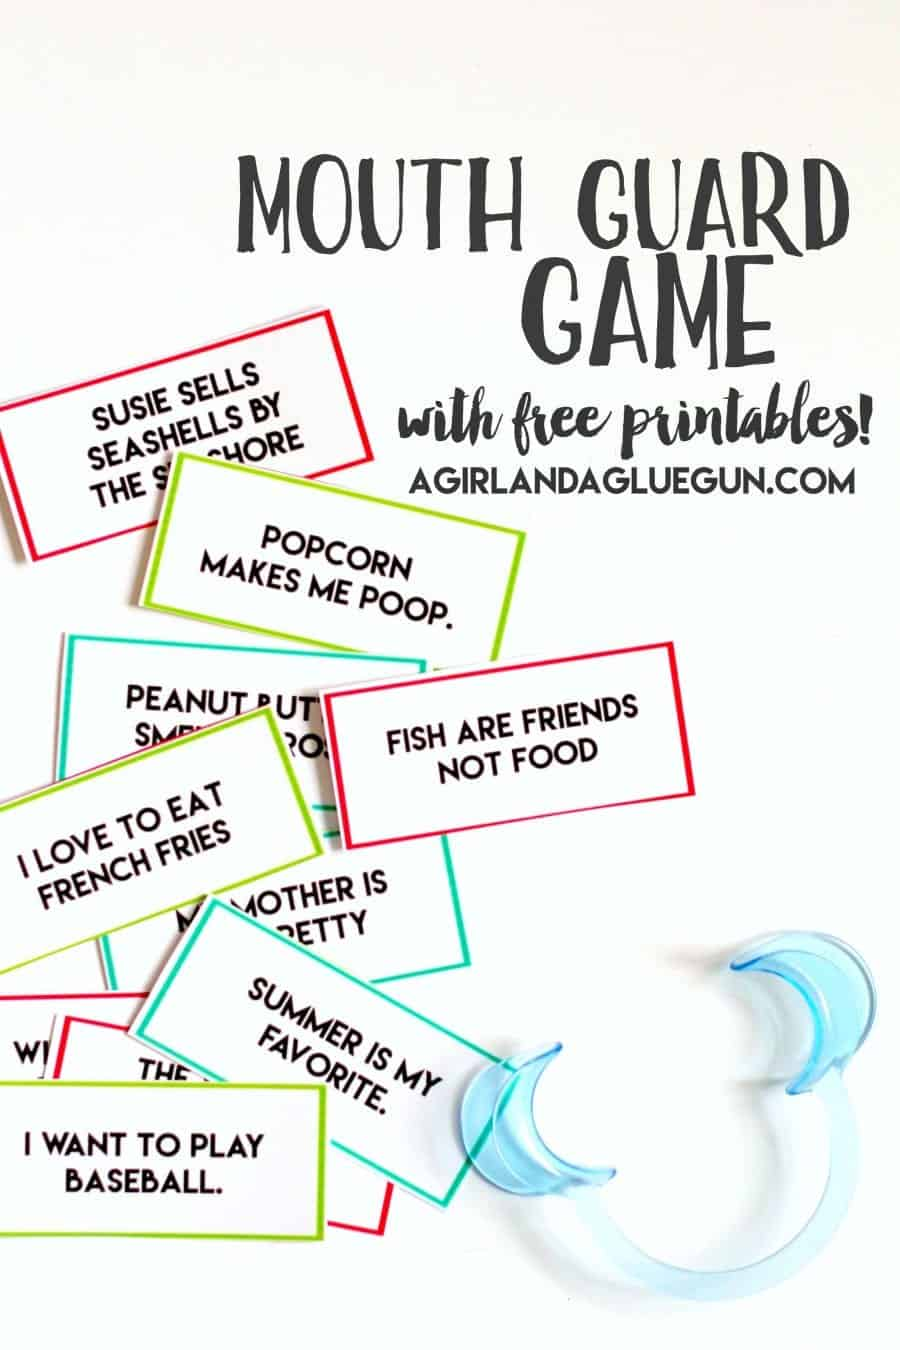 photo regarding Watch Ya Mouth Printable Phrases named Mouth secure sport with no cost printables! - A female and a glue gun